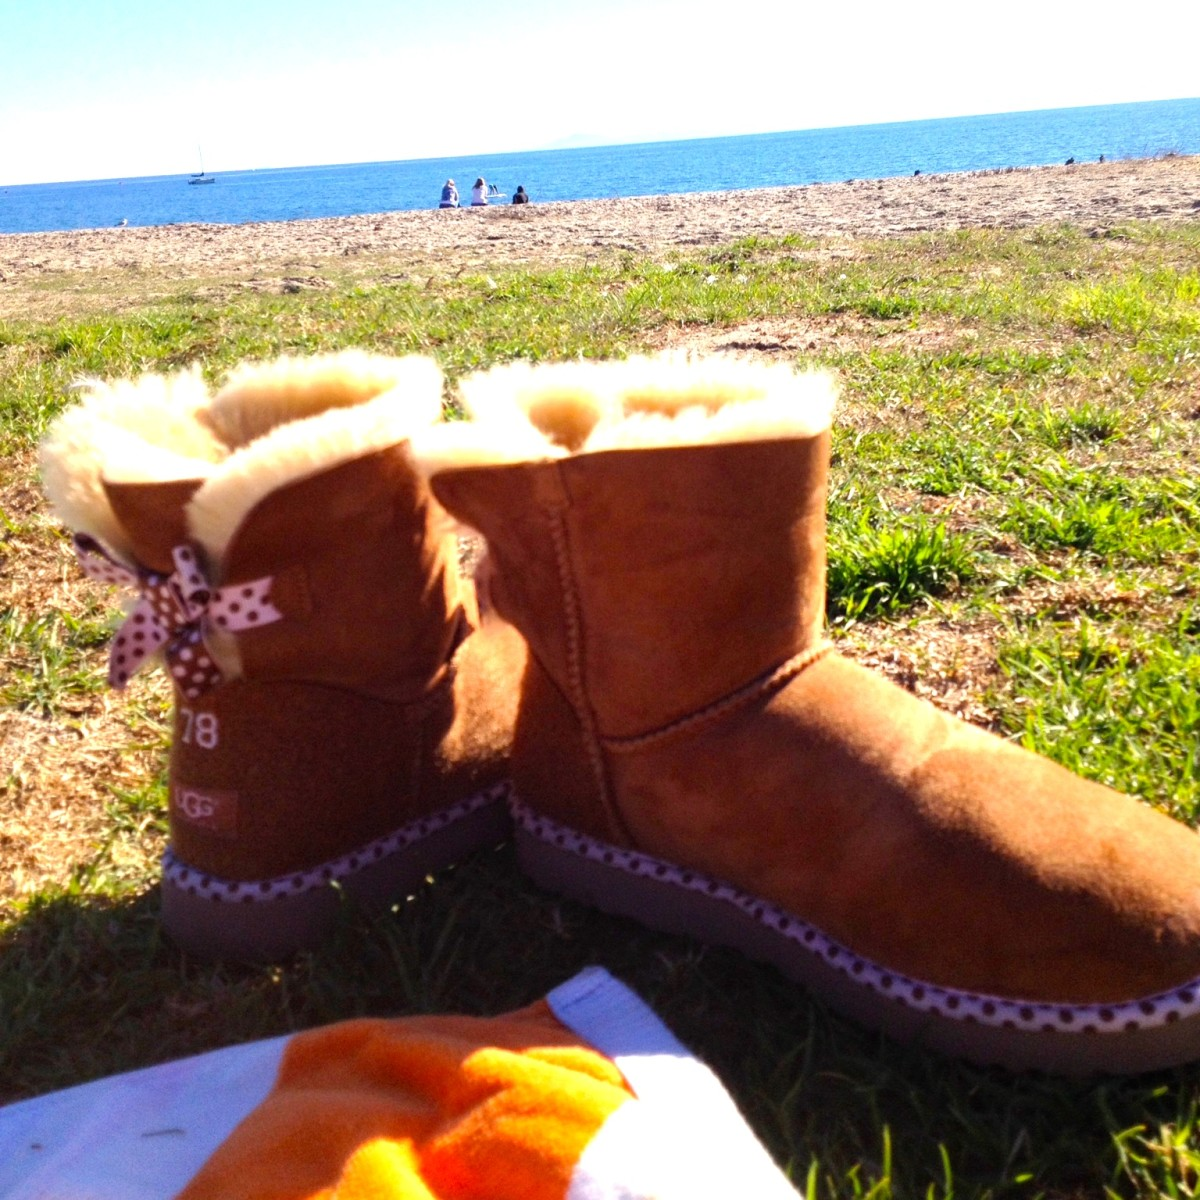 UGG catching some rays at the beach.